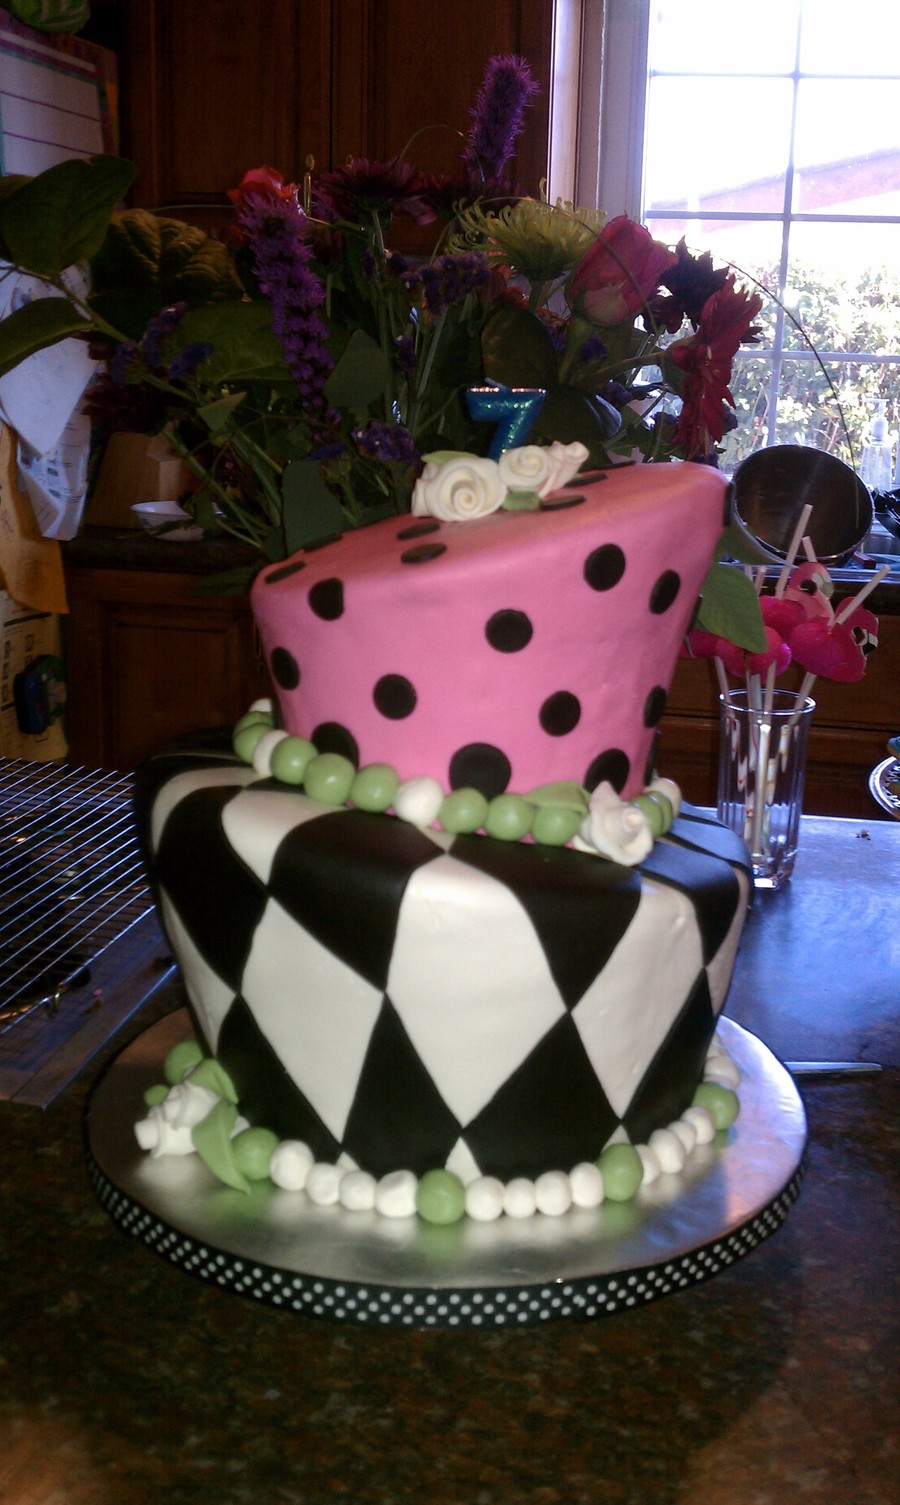 Topsy Turvy Cake For Mad Hatter Tea Party Birthday Cakecentral